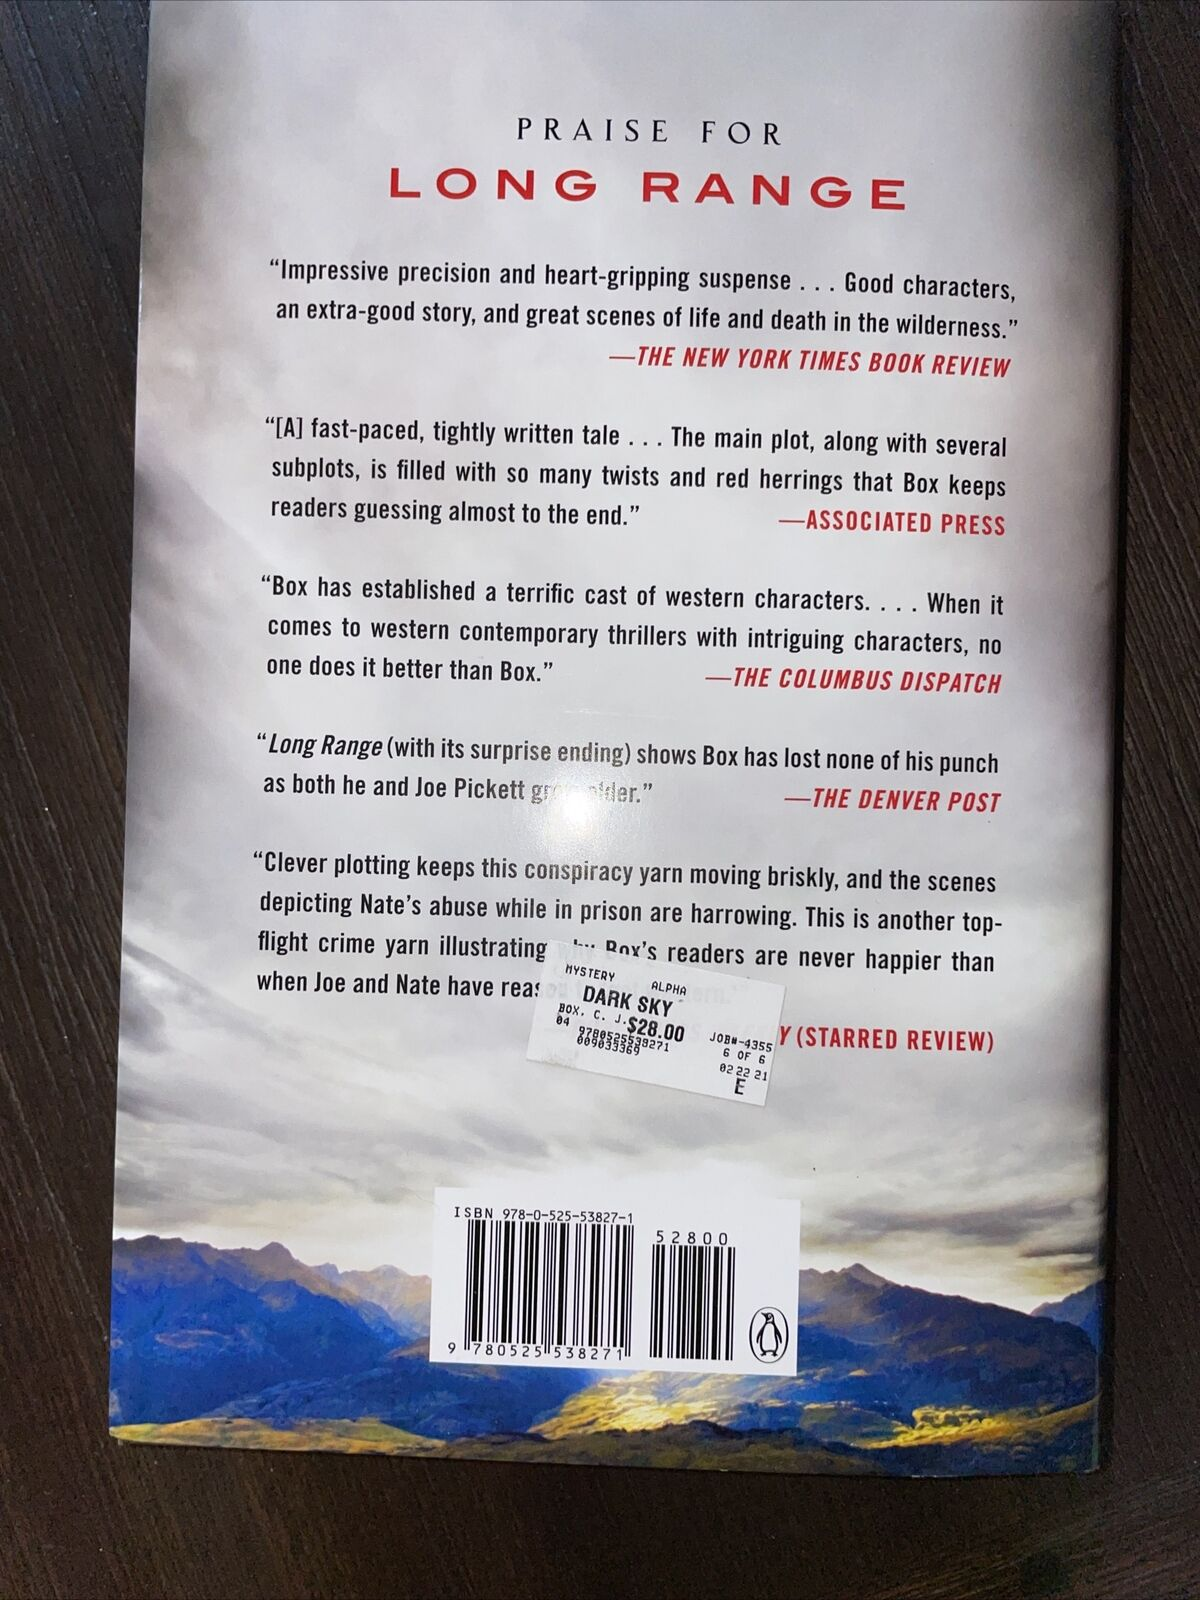 DARK SKY C.J.BOX/JOE PICKETT NOVEL #21 HARDCOVER |